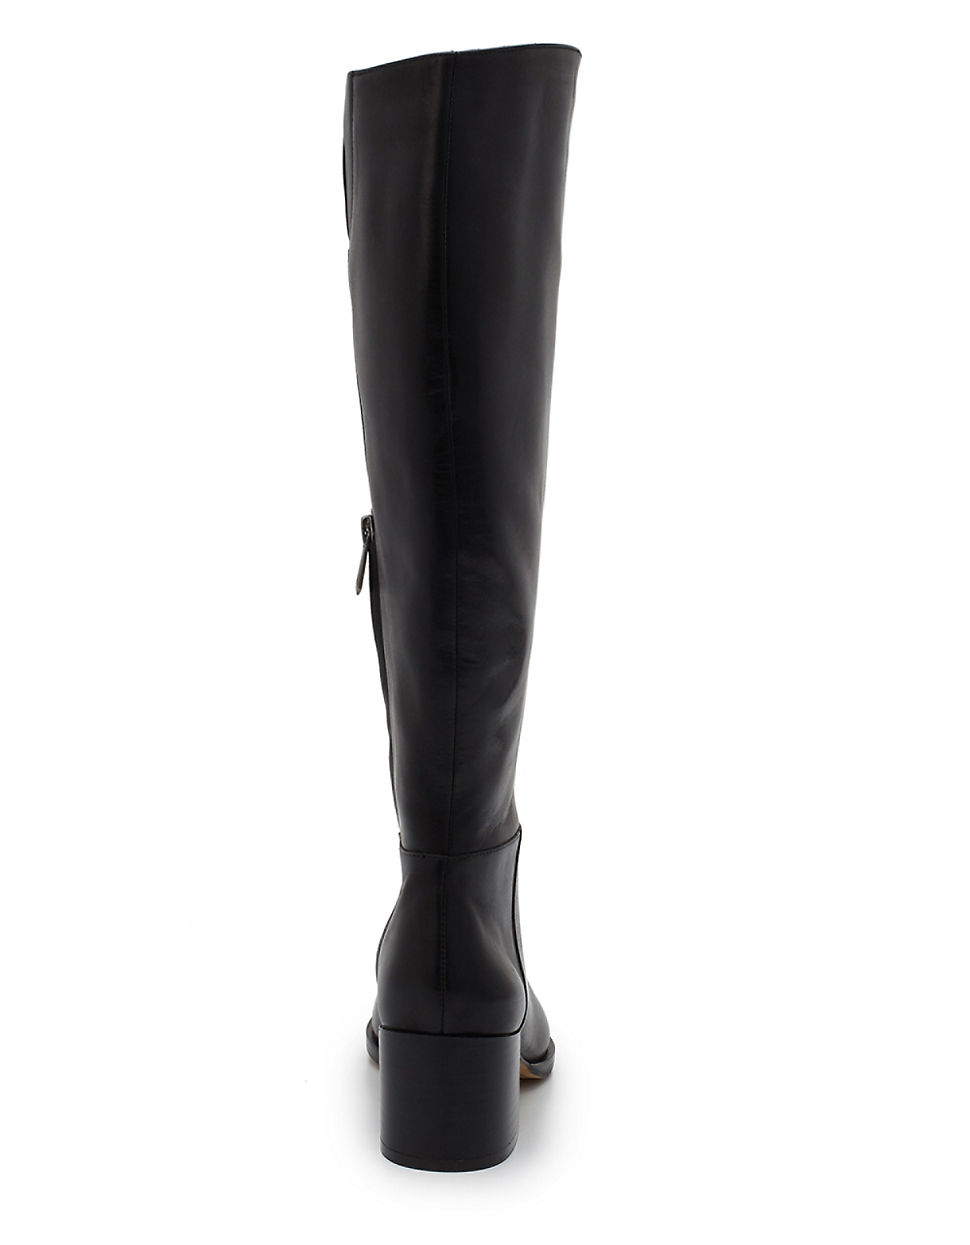 e08ca6e7d3efc Sam Edelman Joelle Leather Riding Boots in Black - Lyst